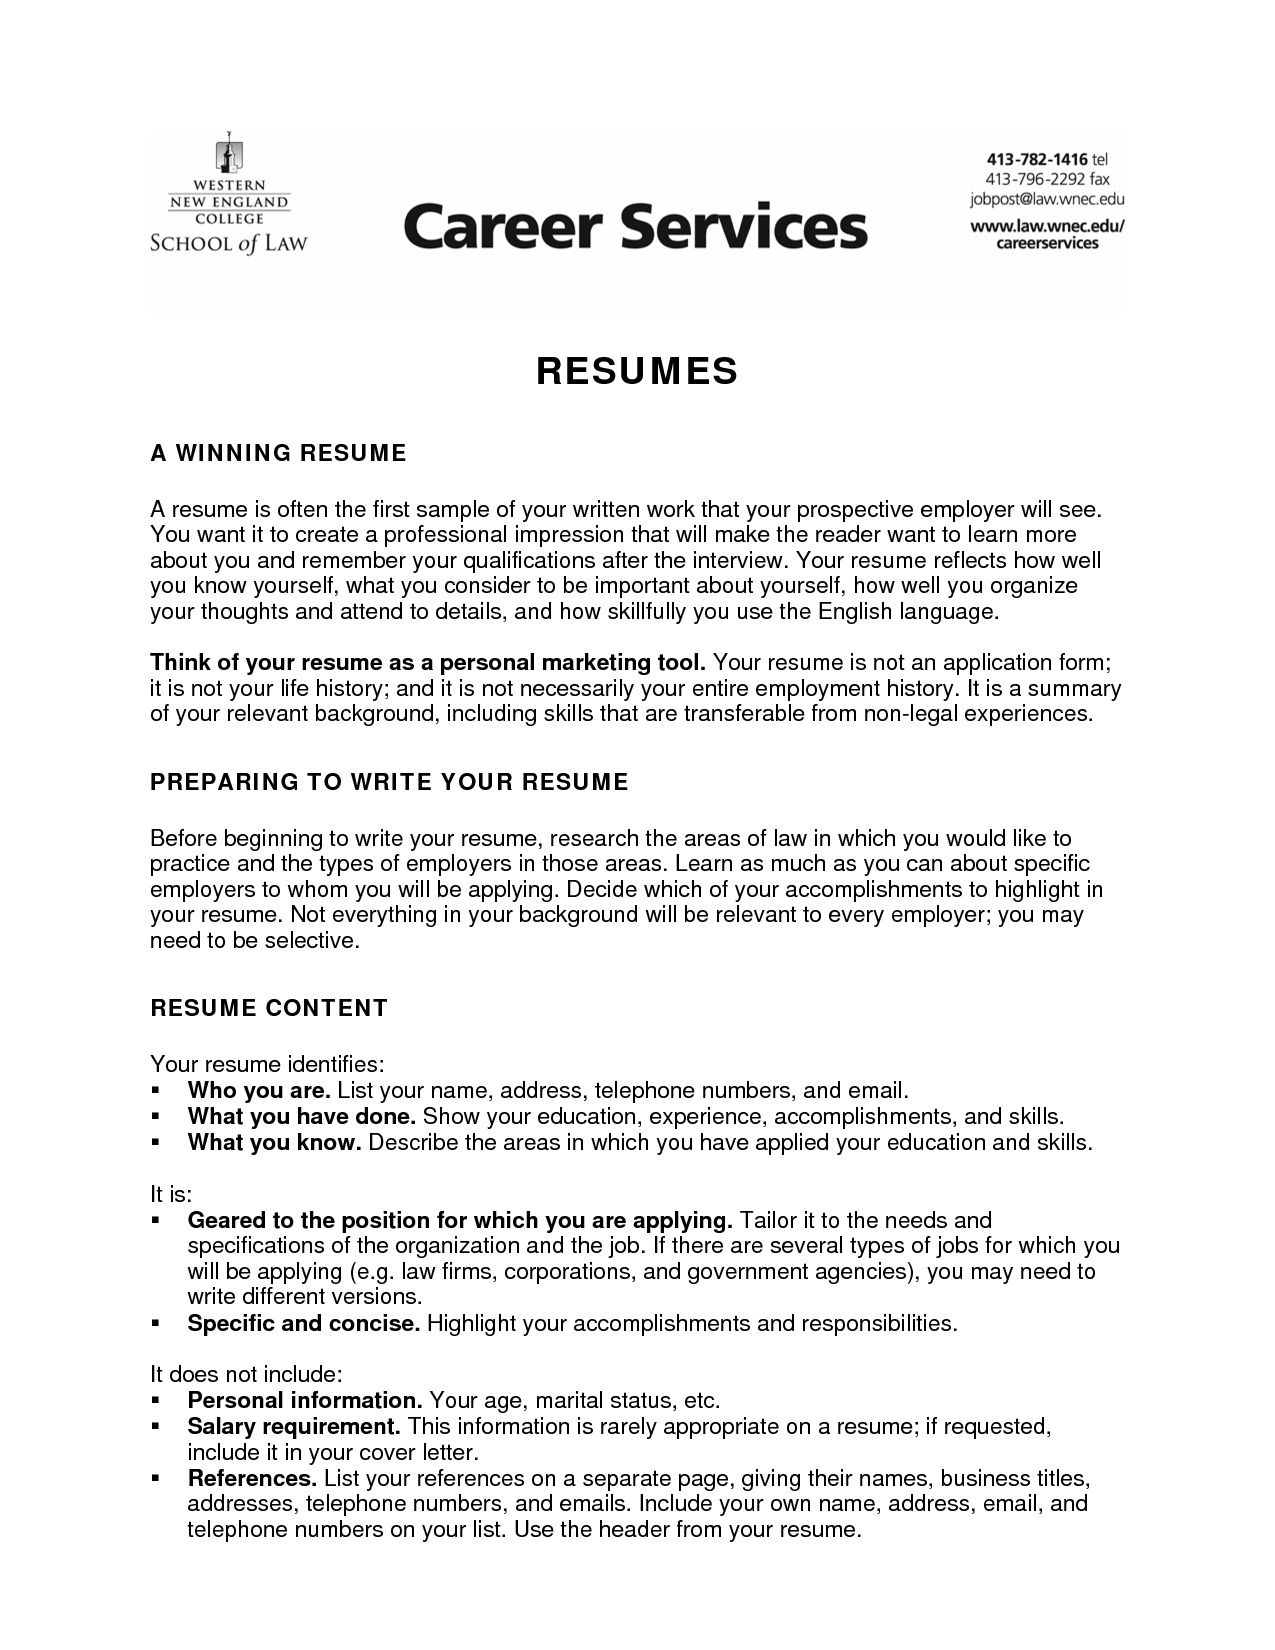 sample resume objective for college student latest example career statement samples and Resume Sample Resume For College Student